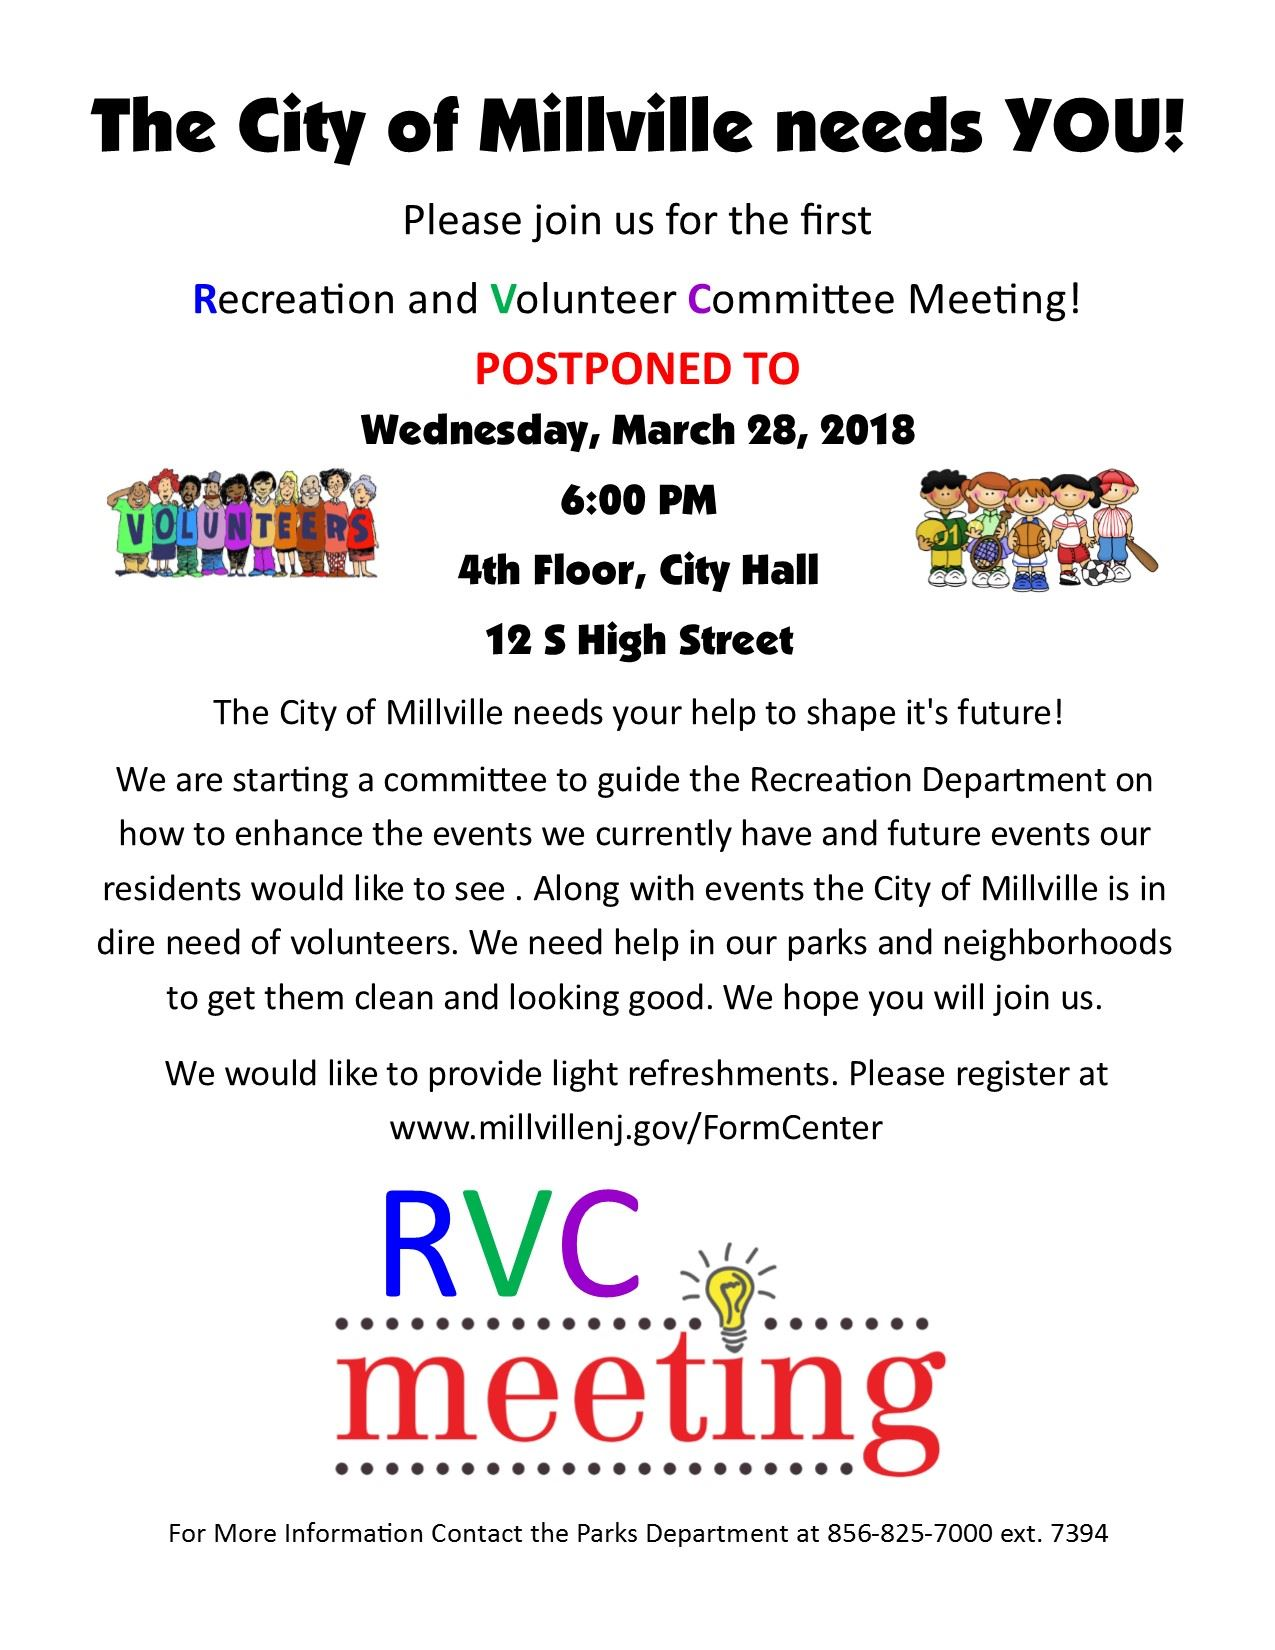 RVC Meeting Flyer